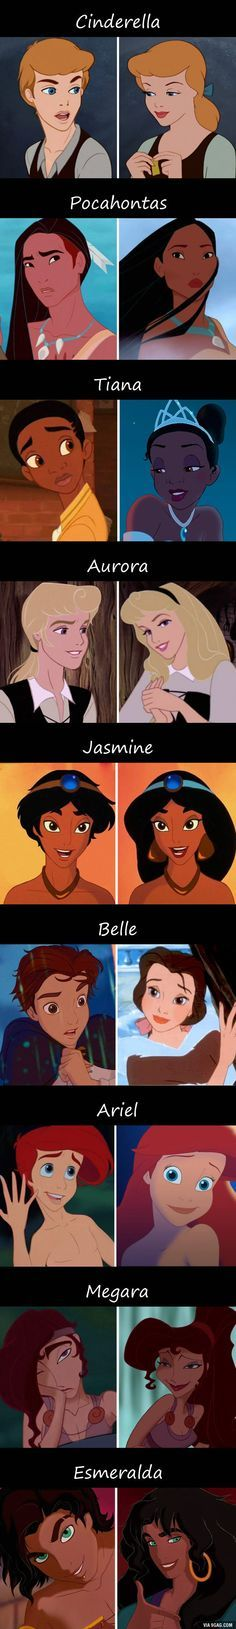 What Would Disney Princesses Look Like If They Were Men?